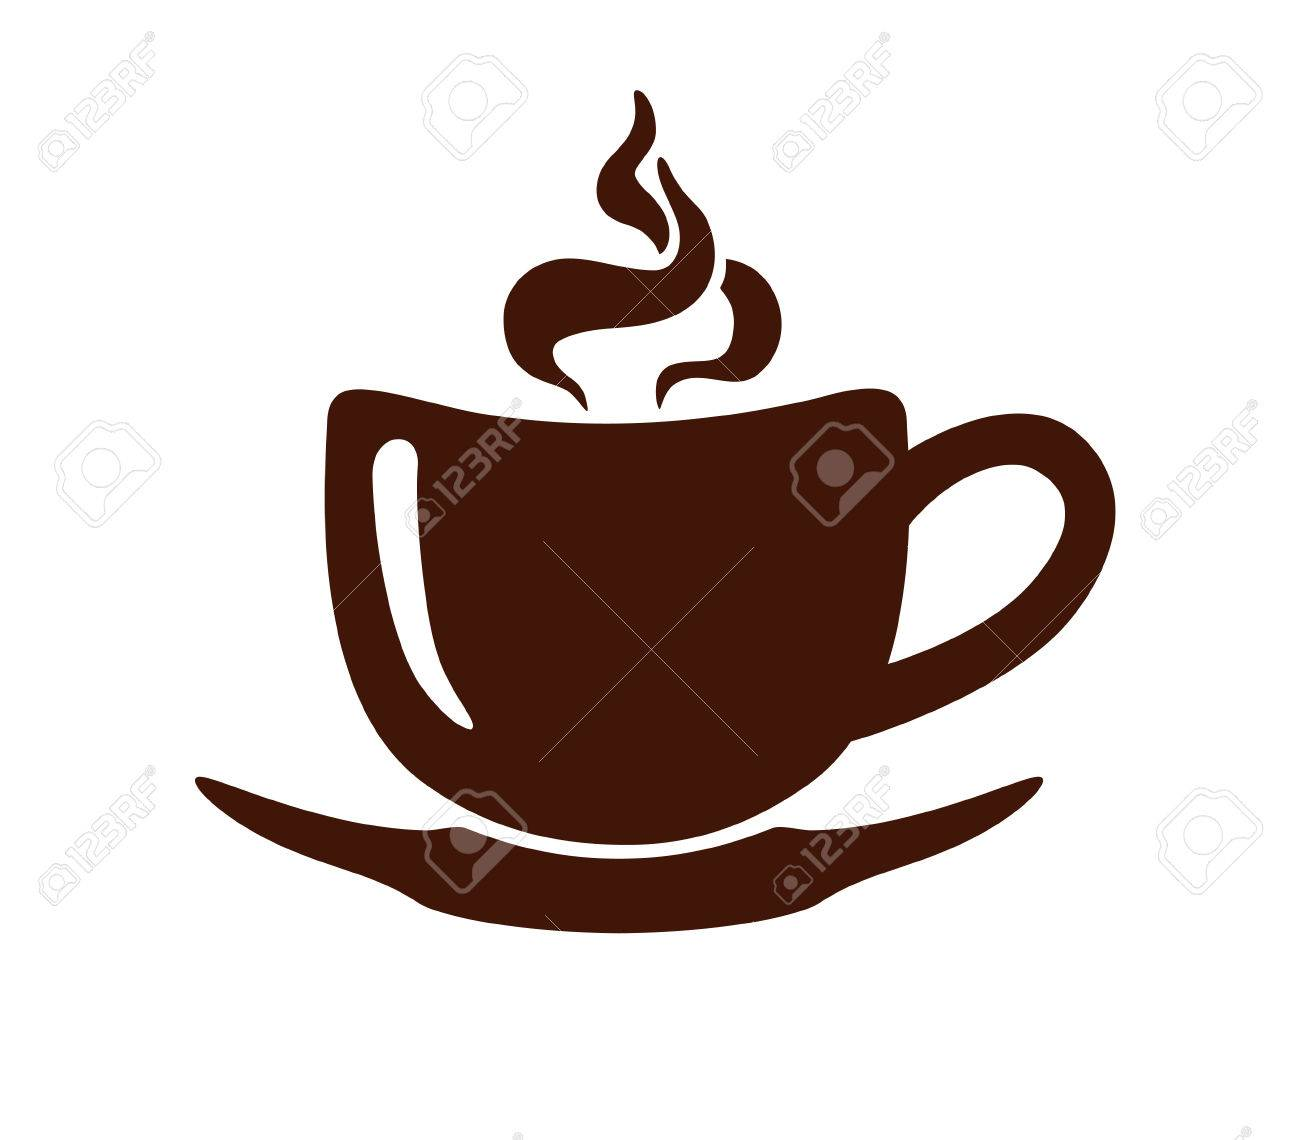 Stylized Image Of A Cup Of Coffee With Steam And Saucer Sign Royalty Free Cliparts Vectors And Stock Illustration Image 67484639